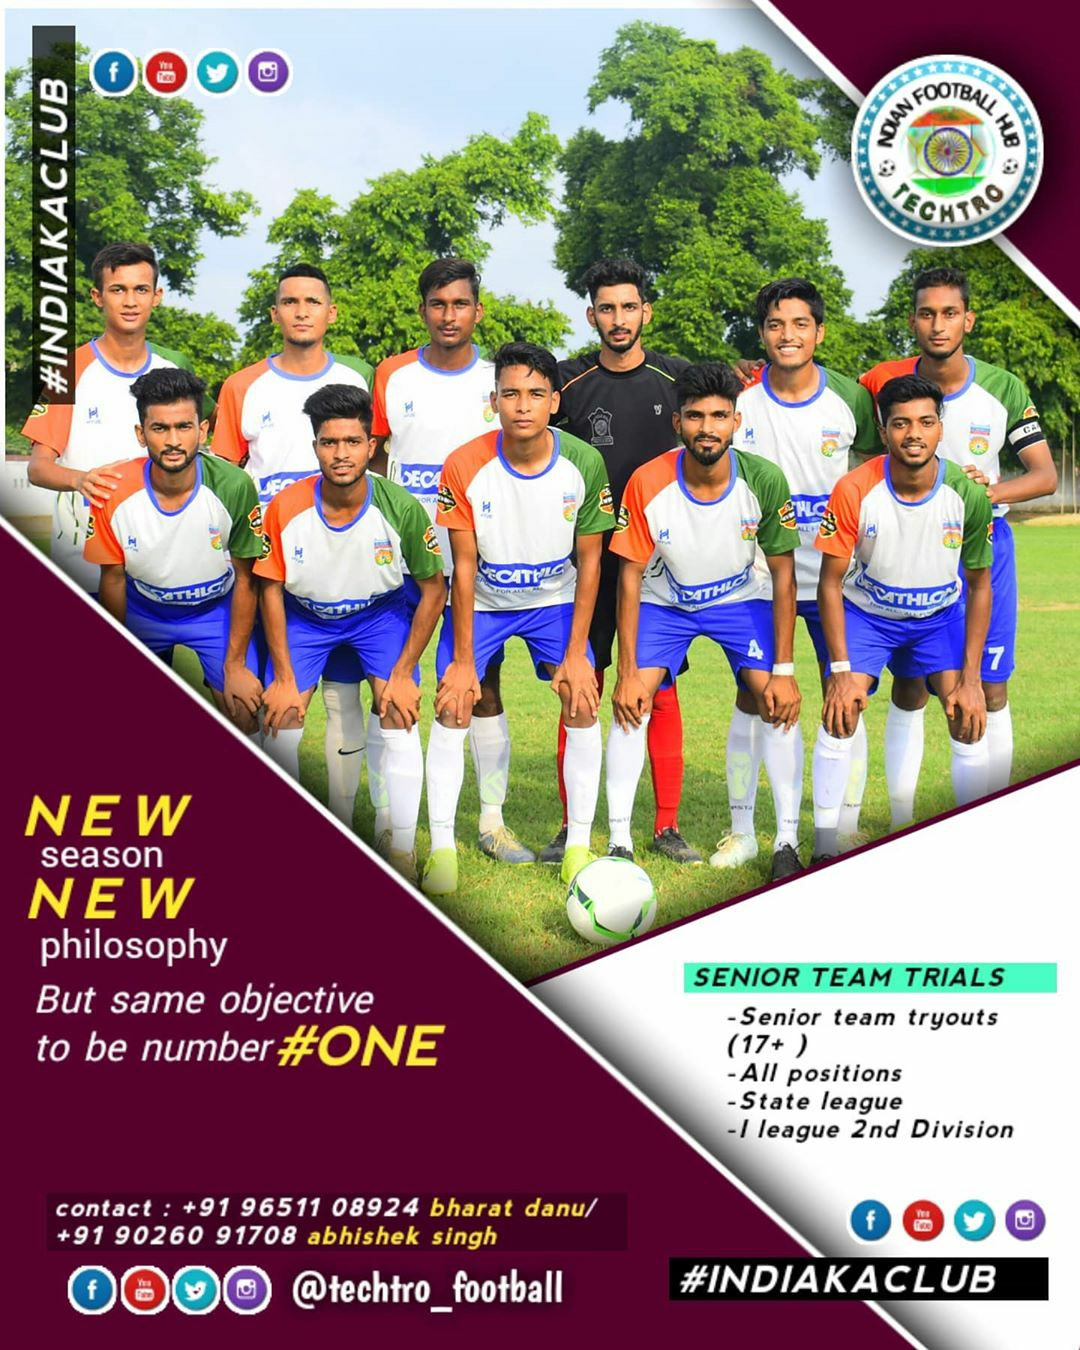 Techtro Football Senior Team Trials Lucknow